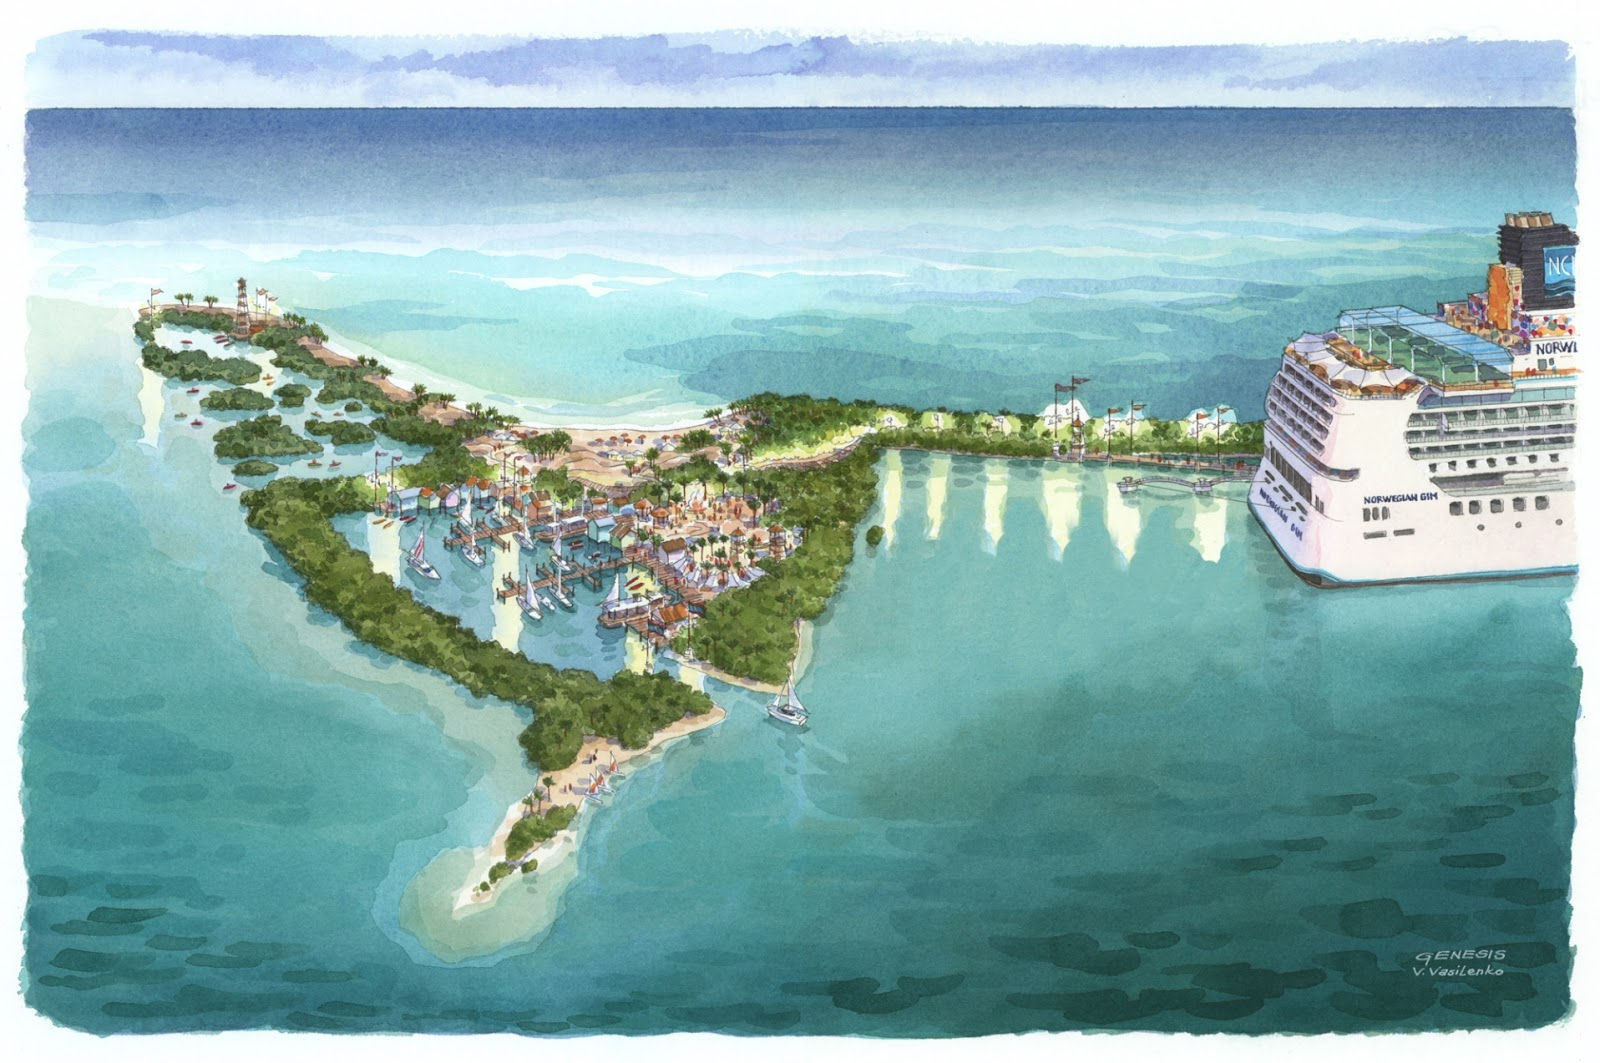 ocean creek resort map with Norwegian Cruise Line Plans Eco on Hotels further 160300067964697584 as well St Regis Monarch Beach Resort And Spa together with Winter Photo Album in addition Surf Pool.